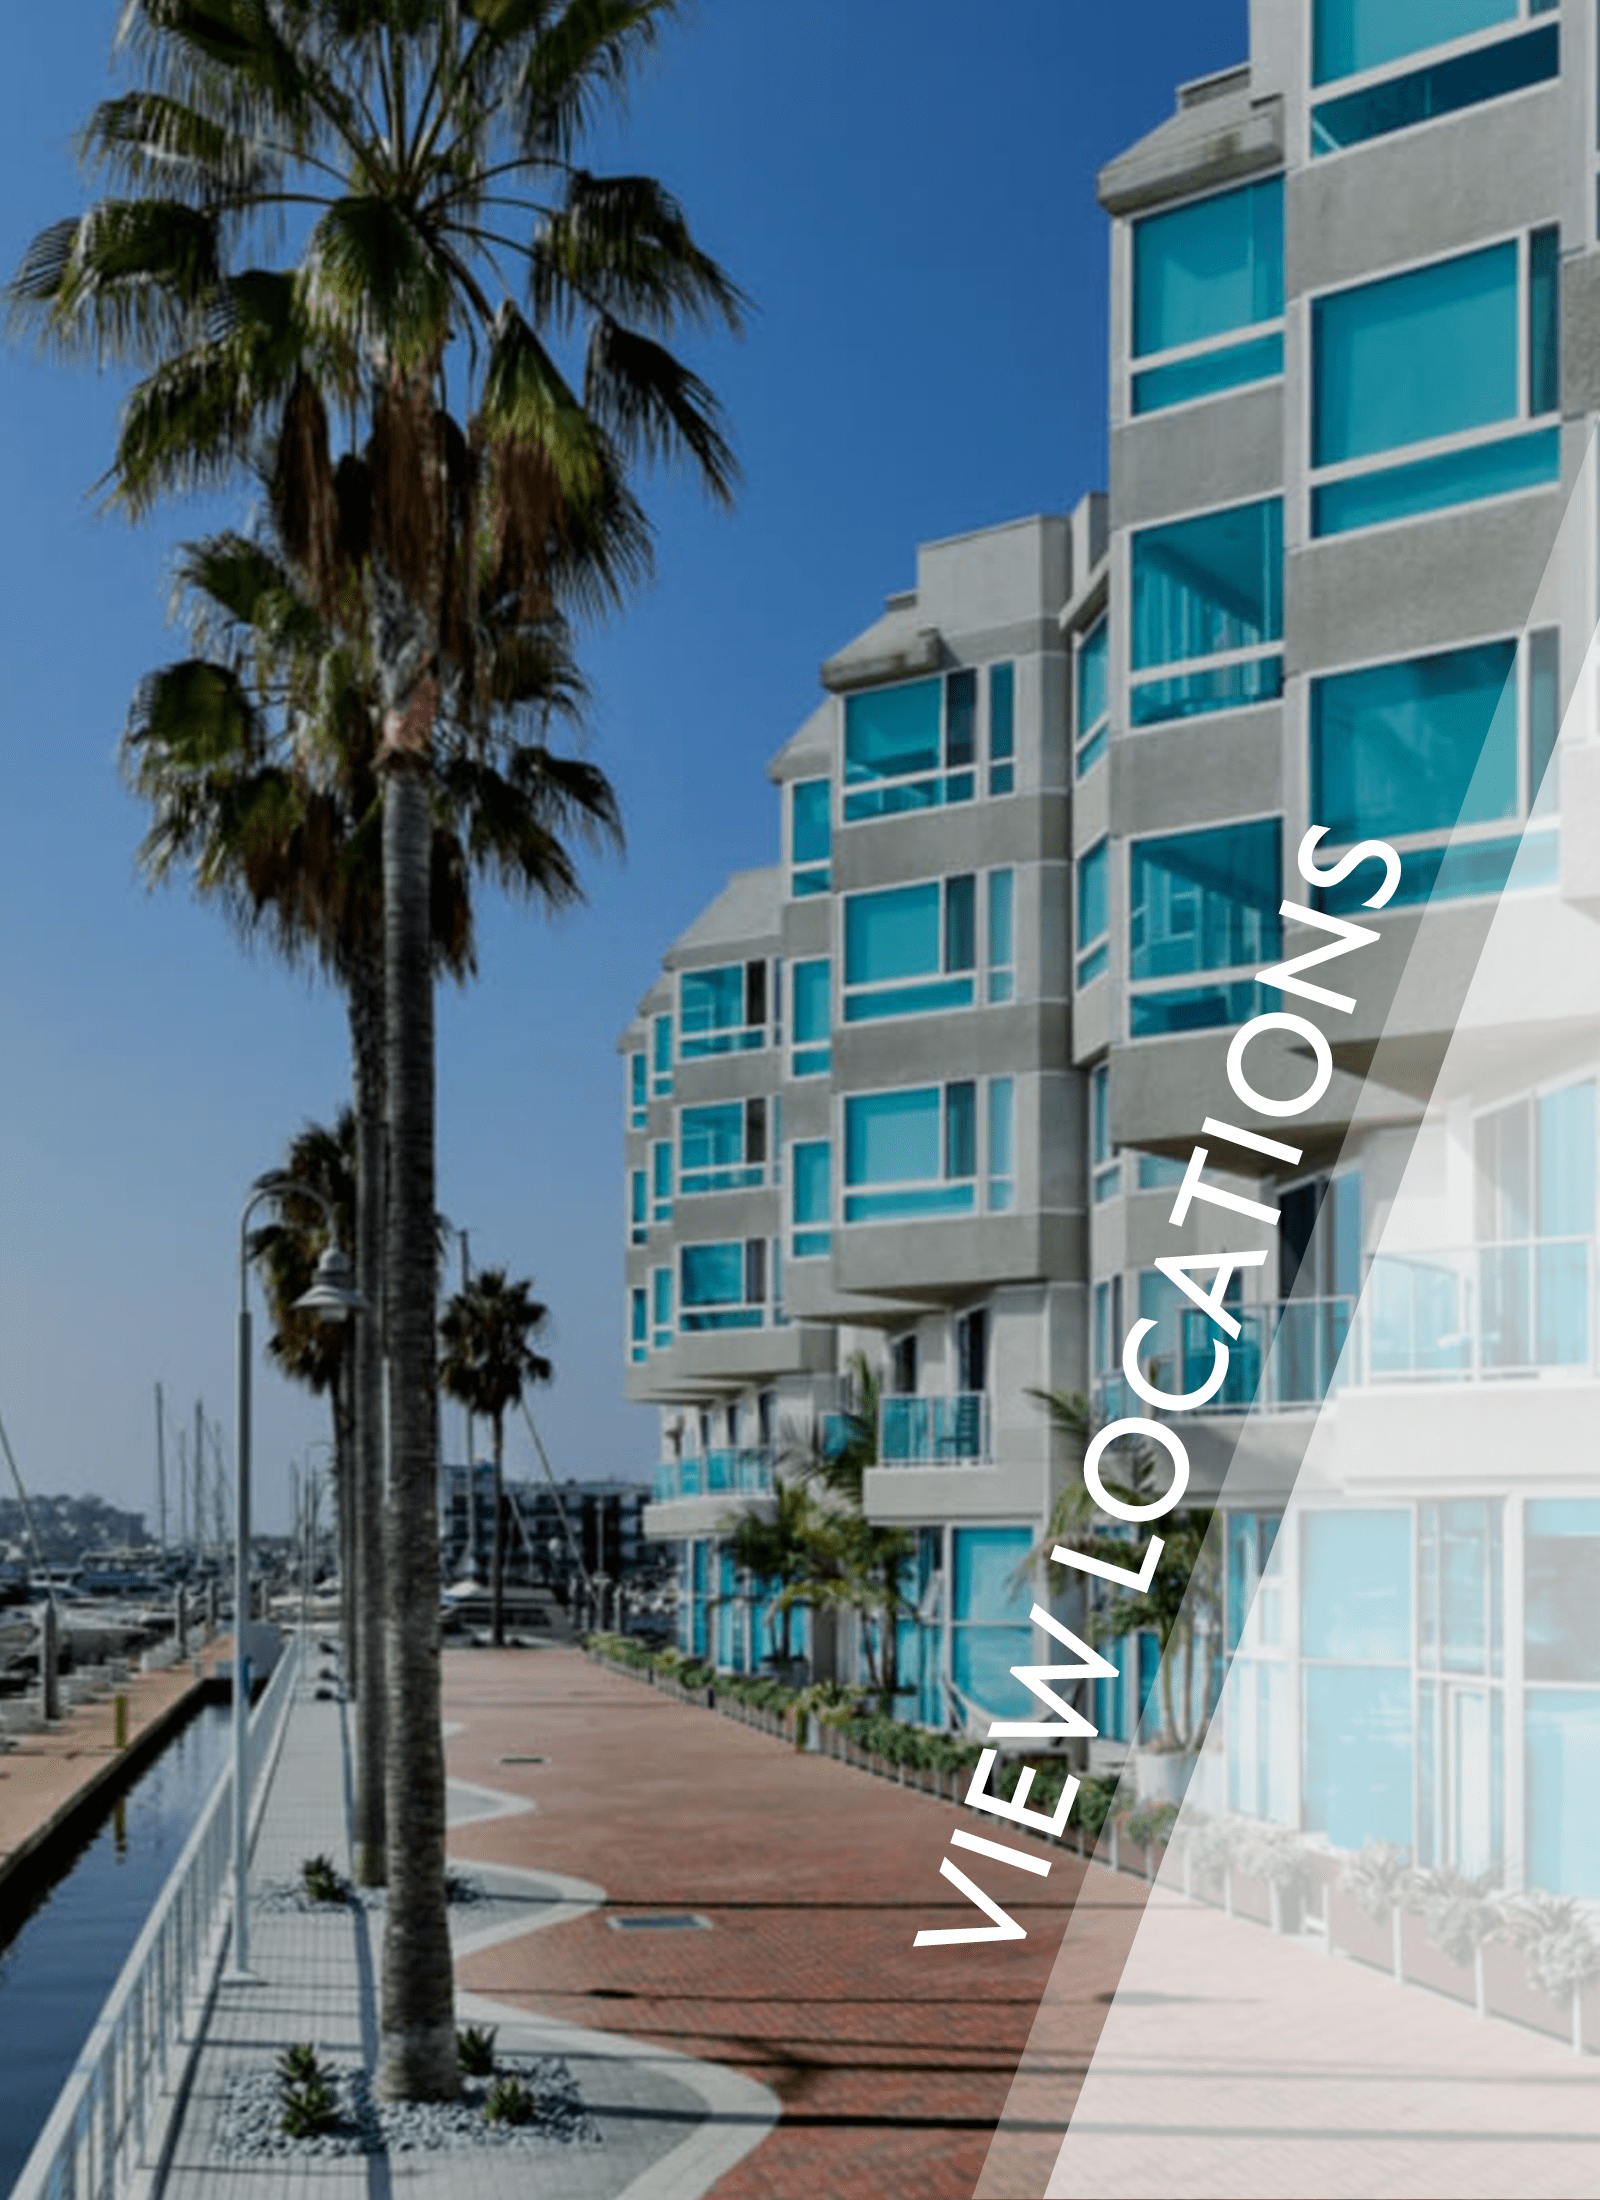 Link to luxury apartment communities in Marina del Rey by E&S Ring Management Corporation in Los Angeles, California